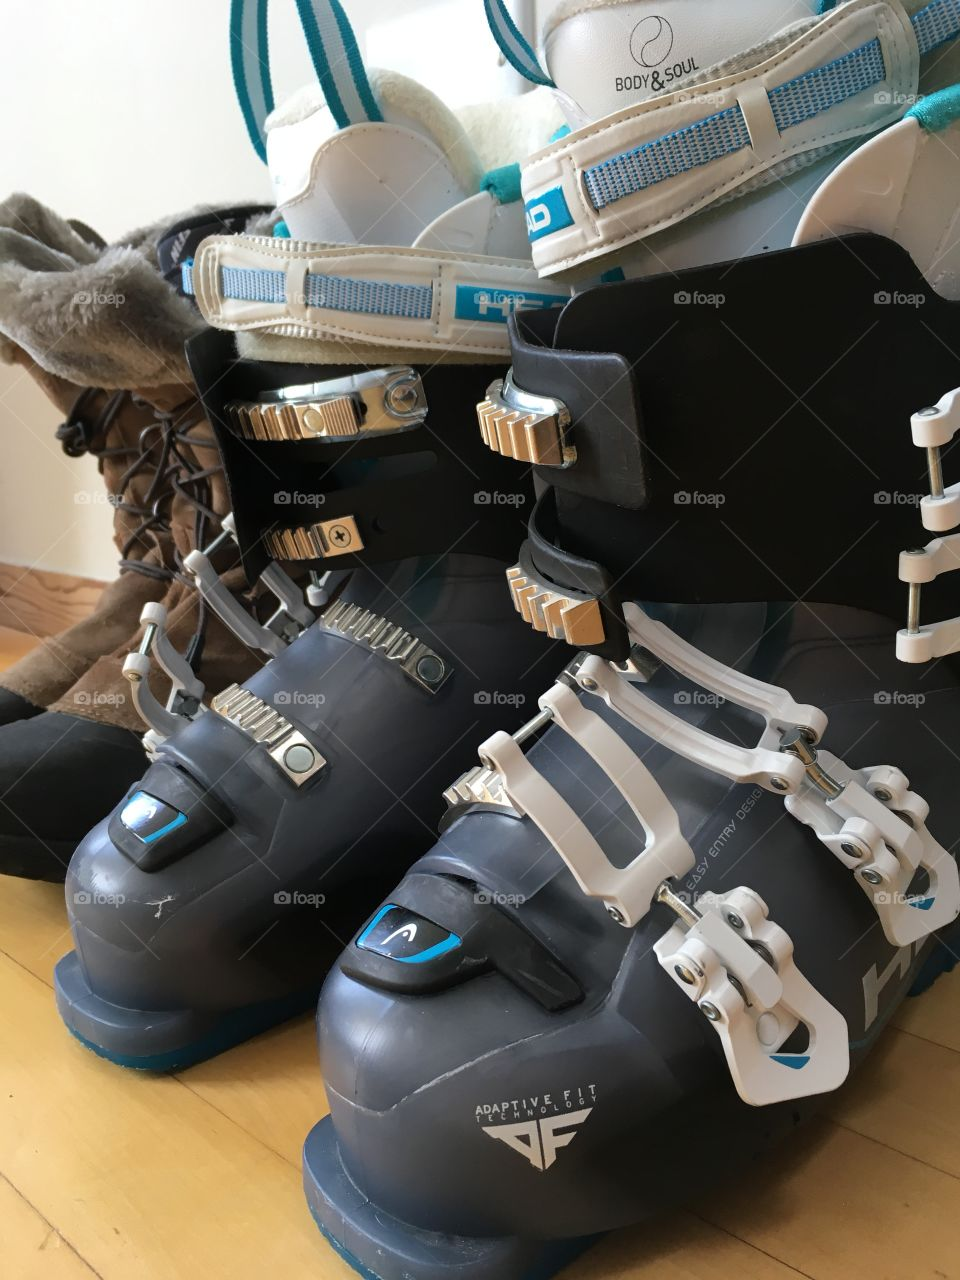 Ski boots and snow boots lined up by the door, ready for snow sport season